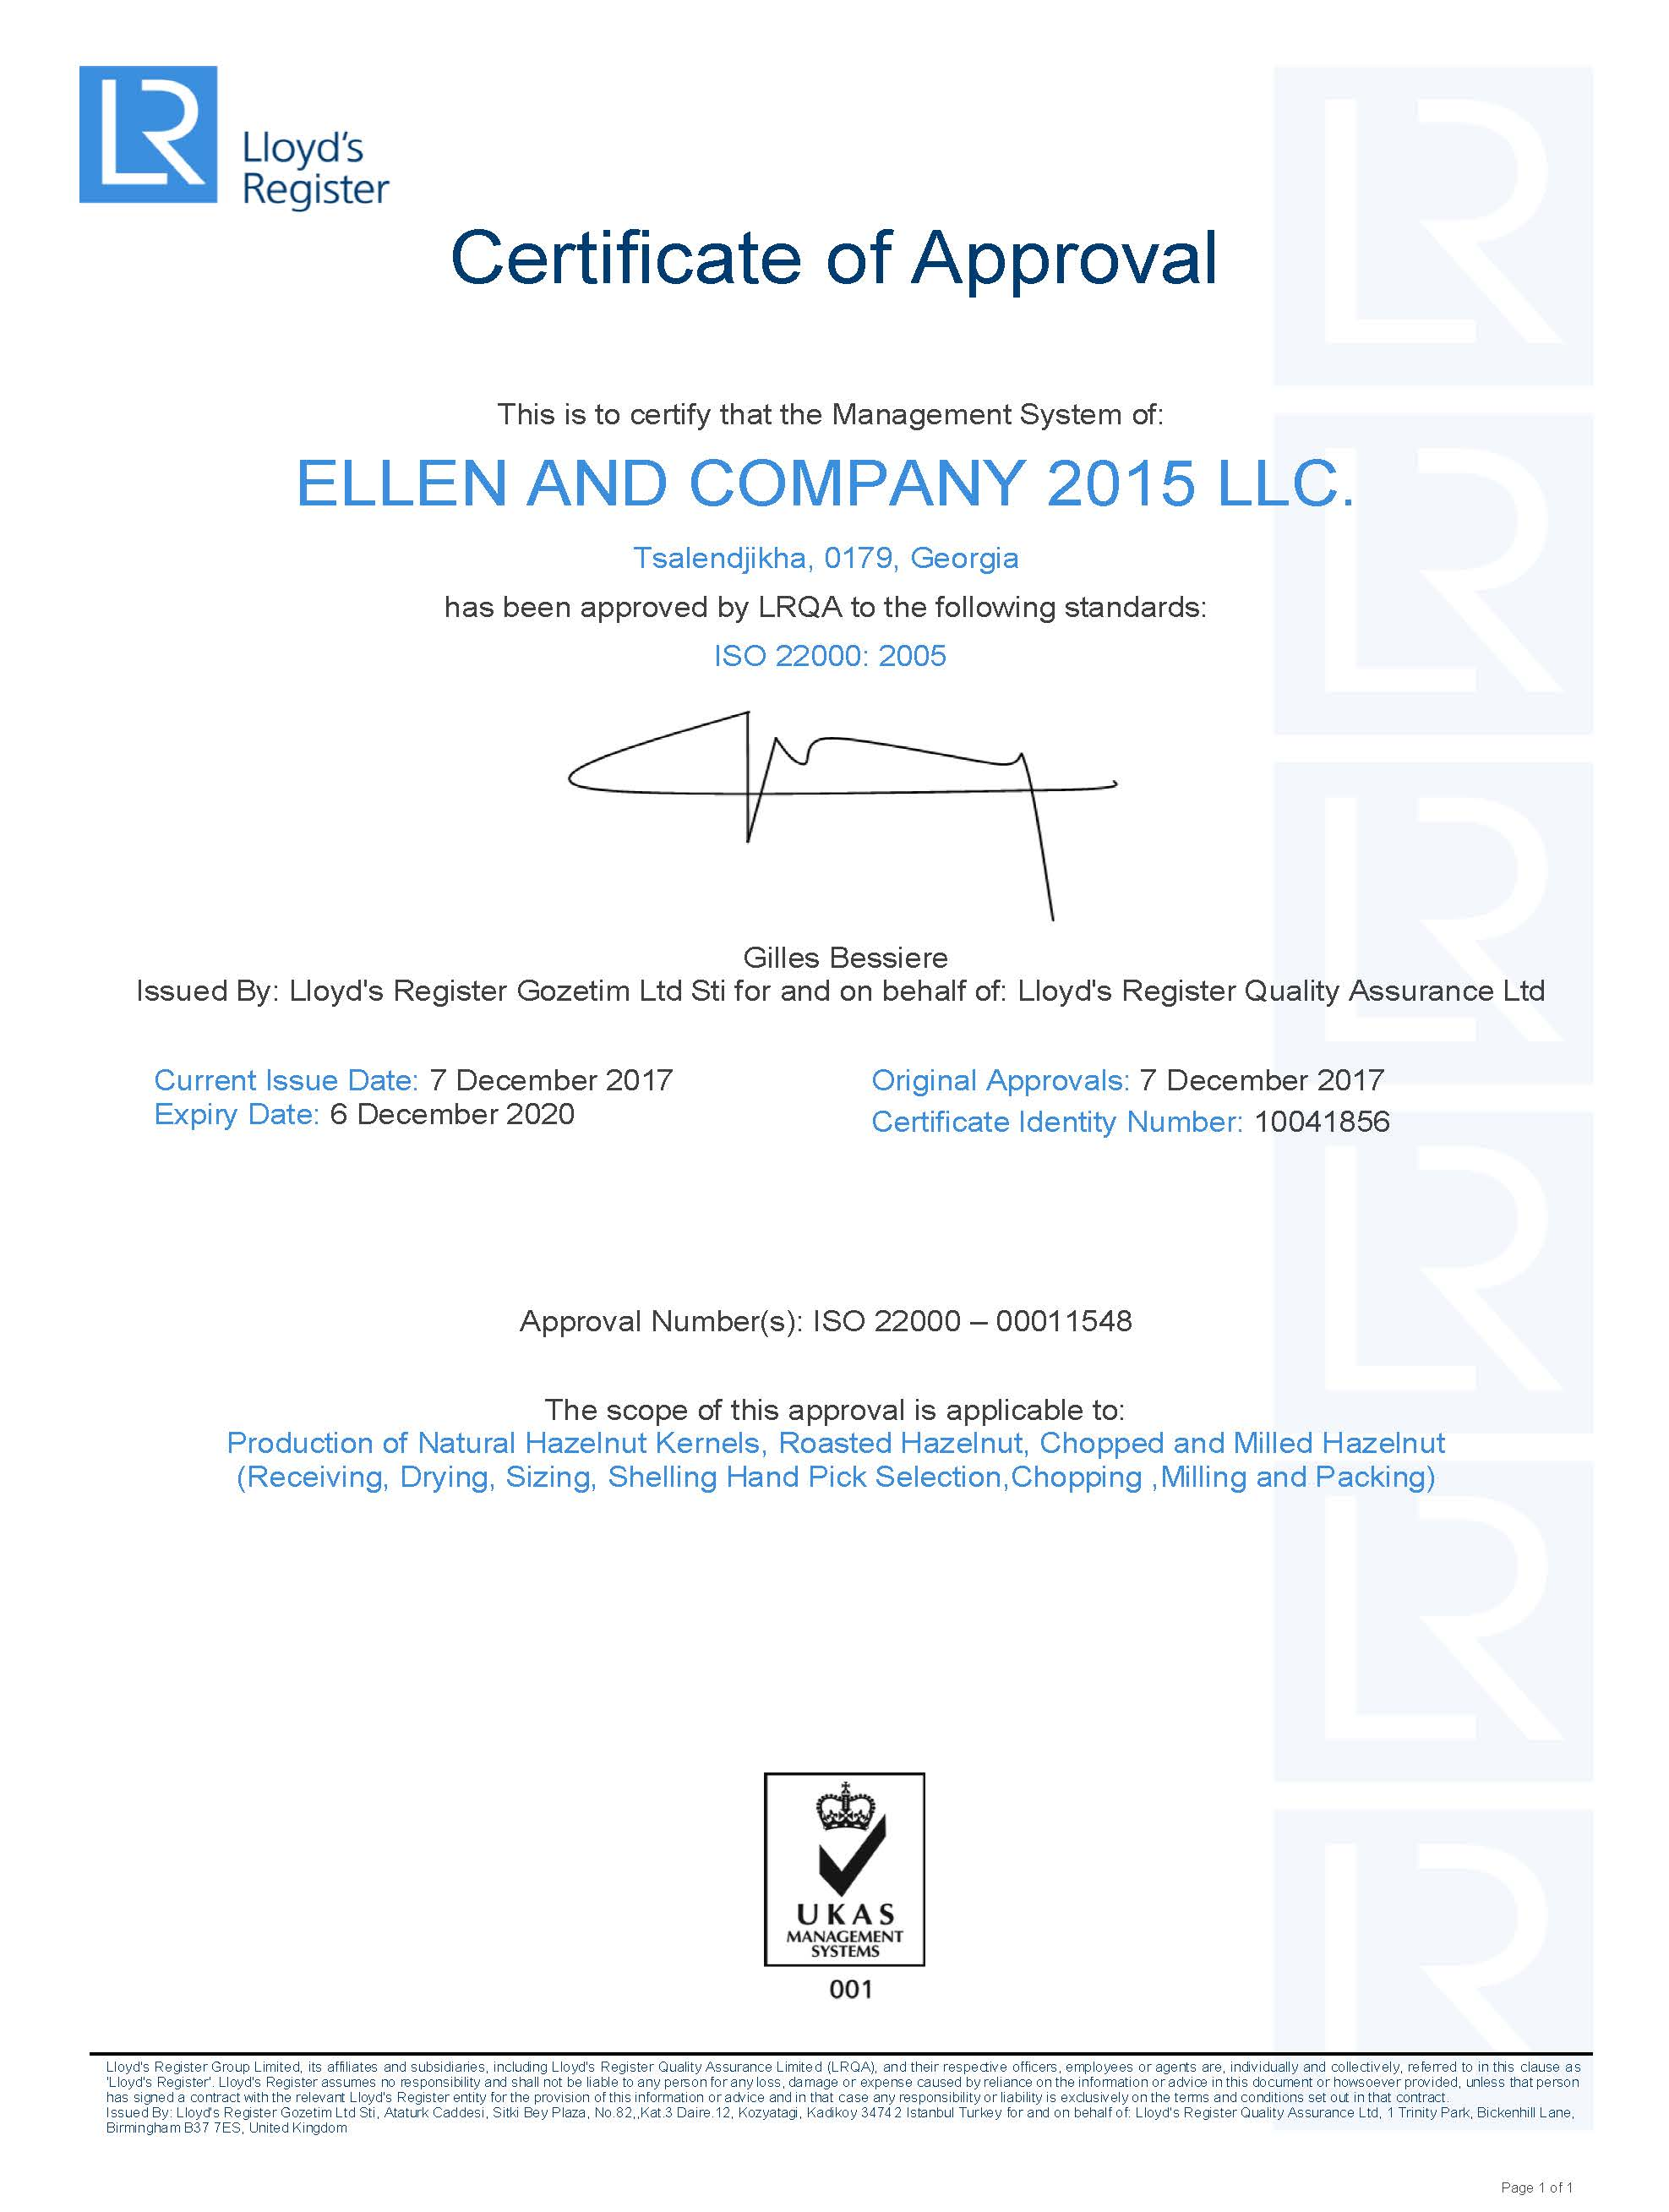 Product Specifications – Ellen and Company